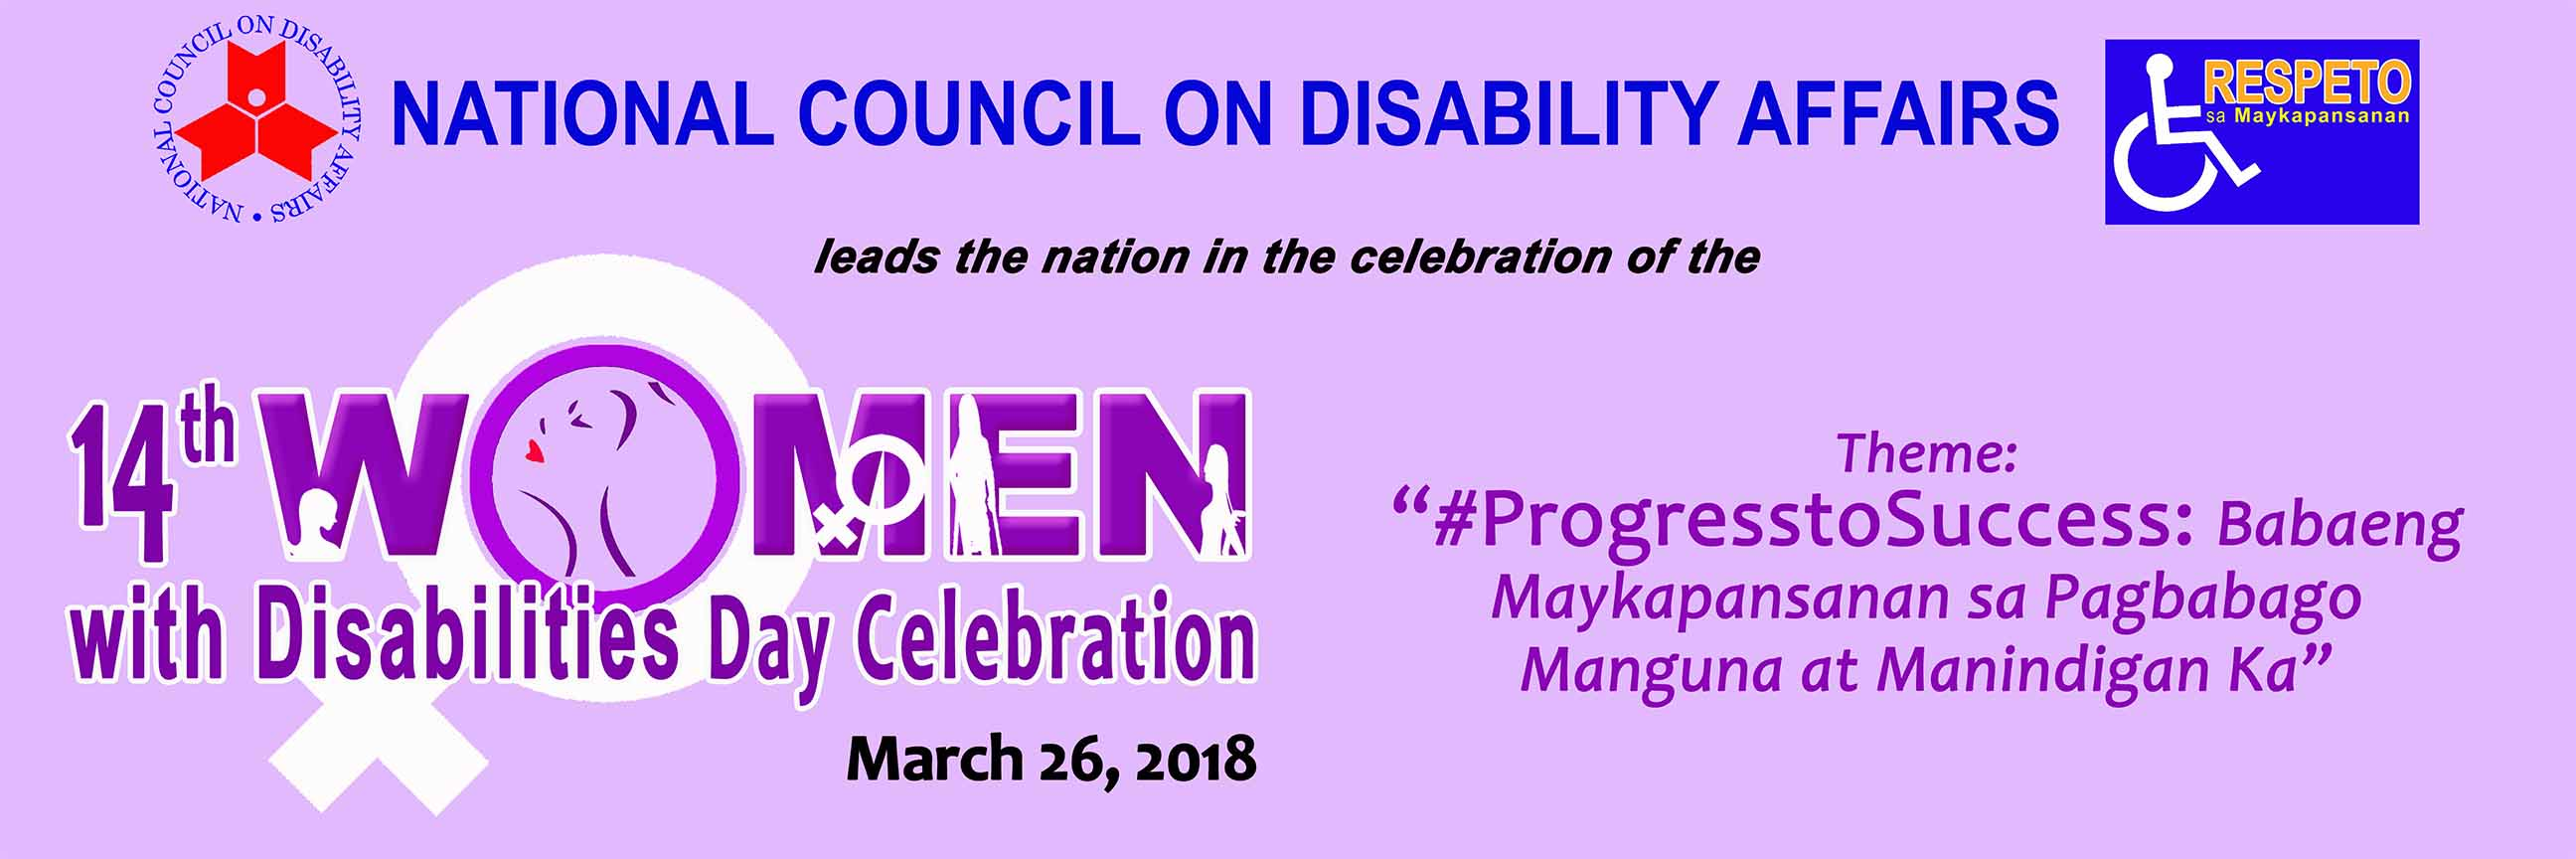 2018 Women with Disability